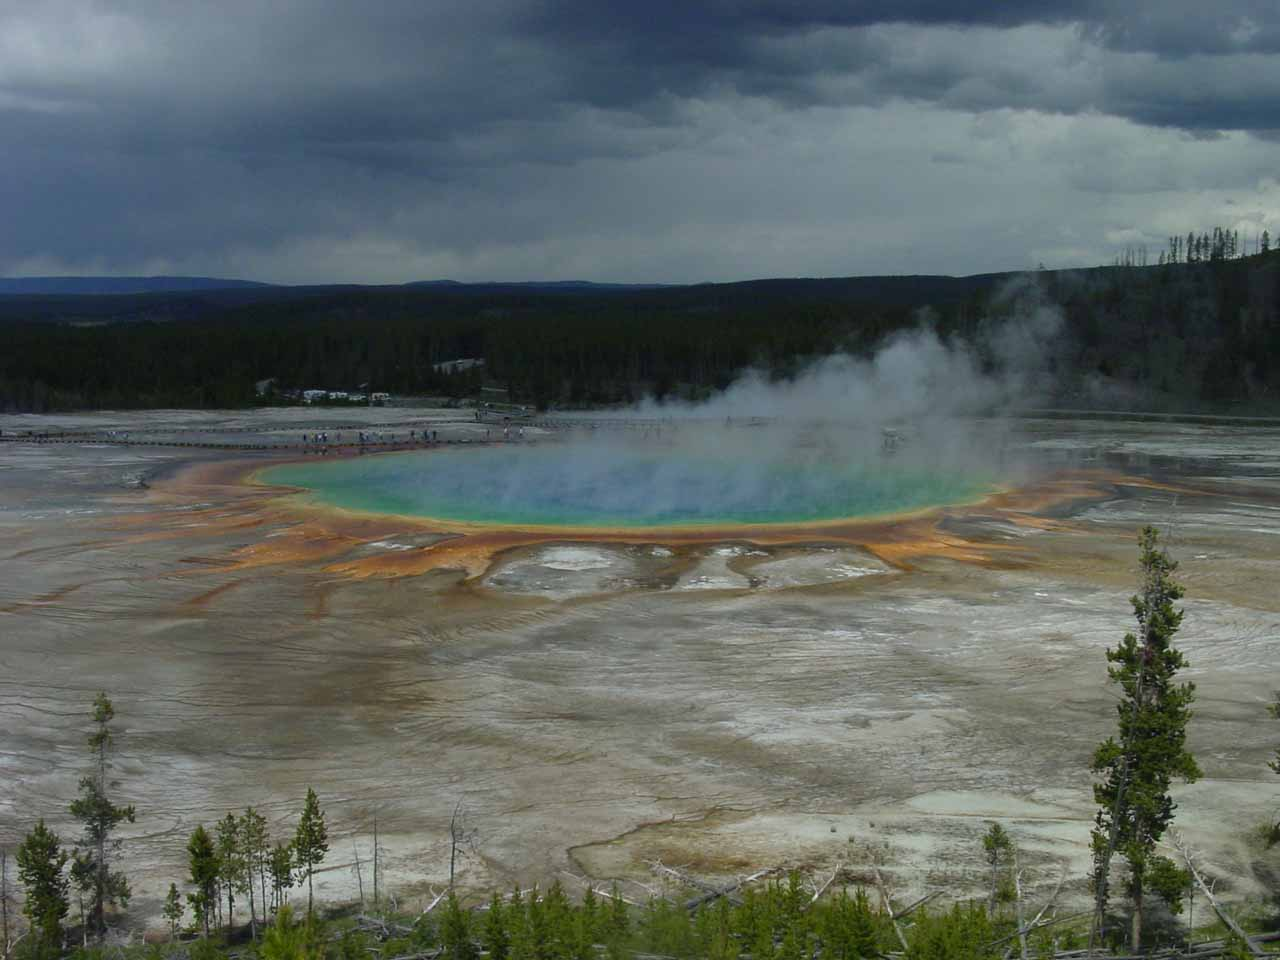 When we went waterfalling in Yellowstone (specifically Fairy Falls), we managed to get this unorthodox view of the Grand Prismatic Spring